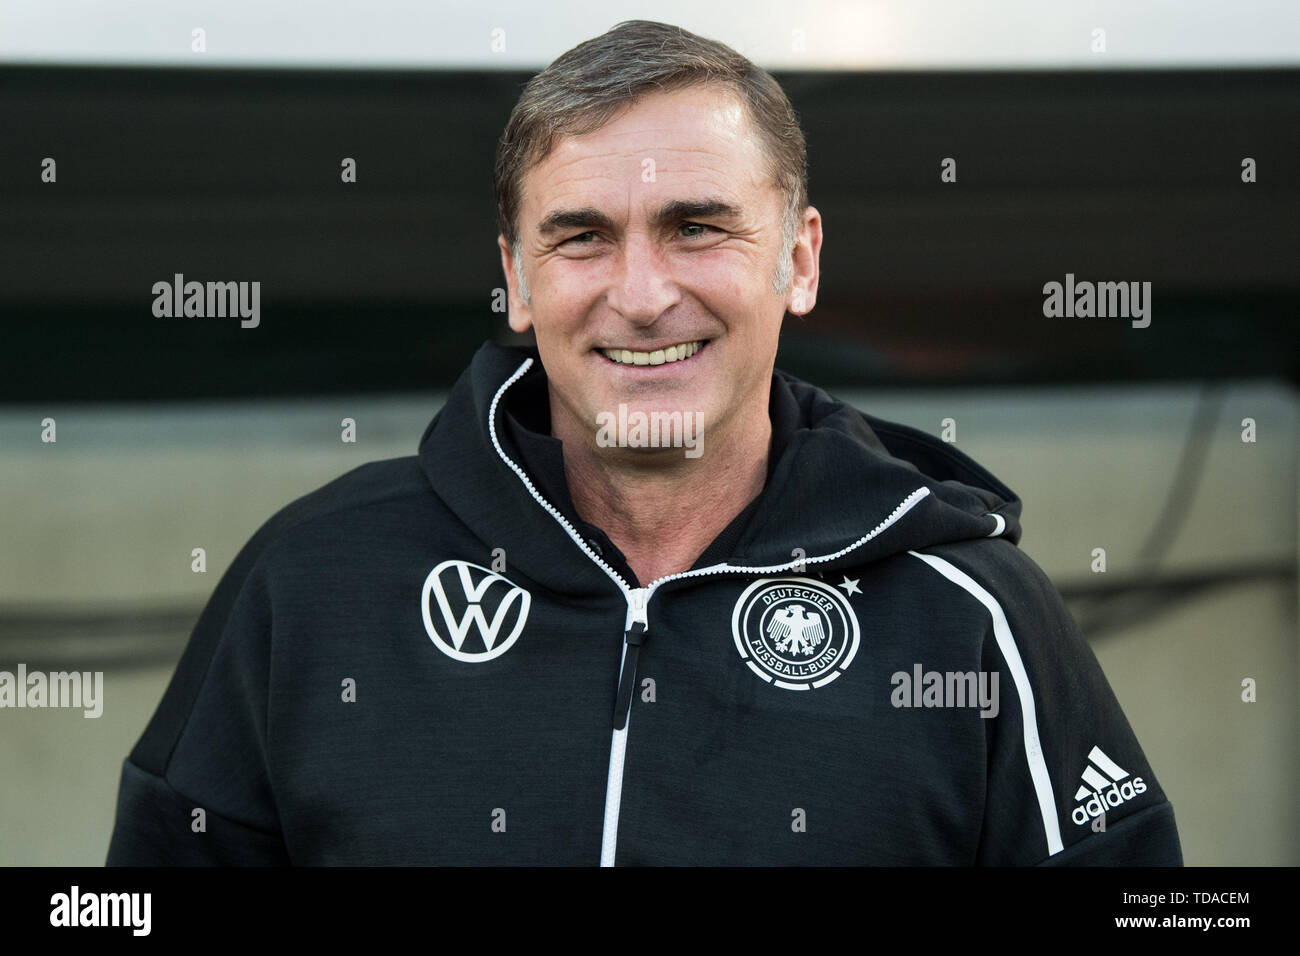 Preview UEFA Under21 European Championship in Italy/SanMarino from 16-30.06 2019. Archive picture: coach Stefan KUNTZ (GER), laughsd, smiling, smile, smiling, laughs, bust, football Laender match, U21, friendly match, Germany (GER) - France (FRA ) 2: 2, on 21.03.2019 in Essen/Germany. å | usage worldwide - Stock Image